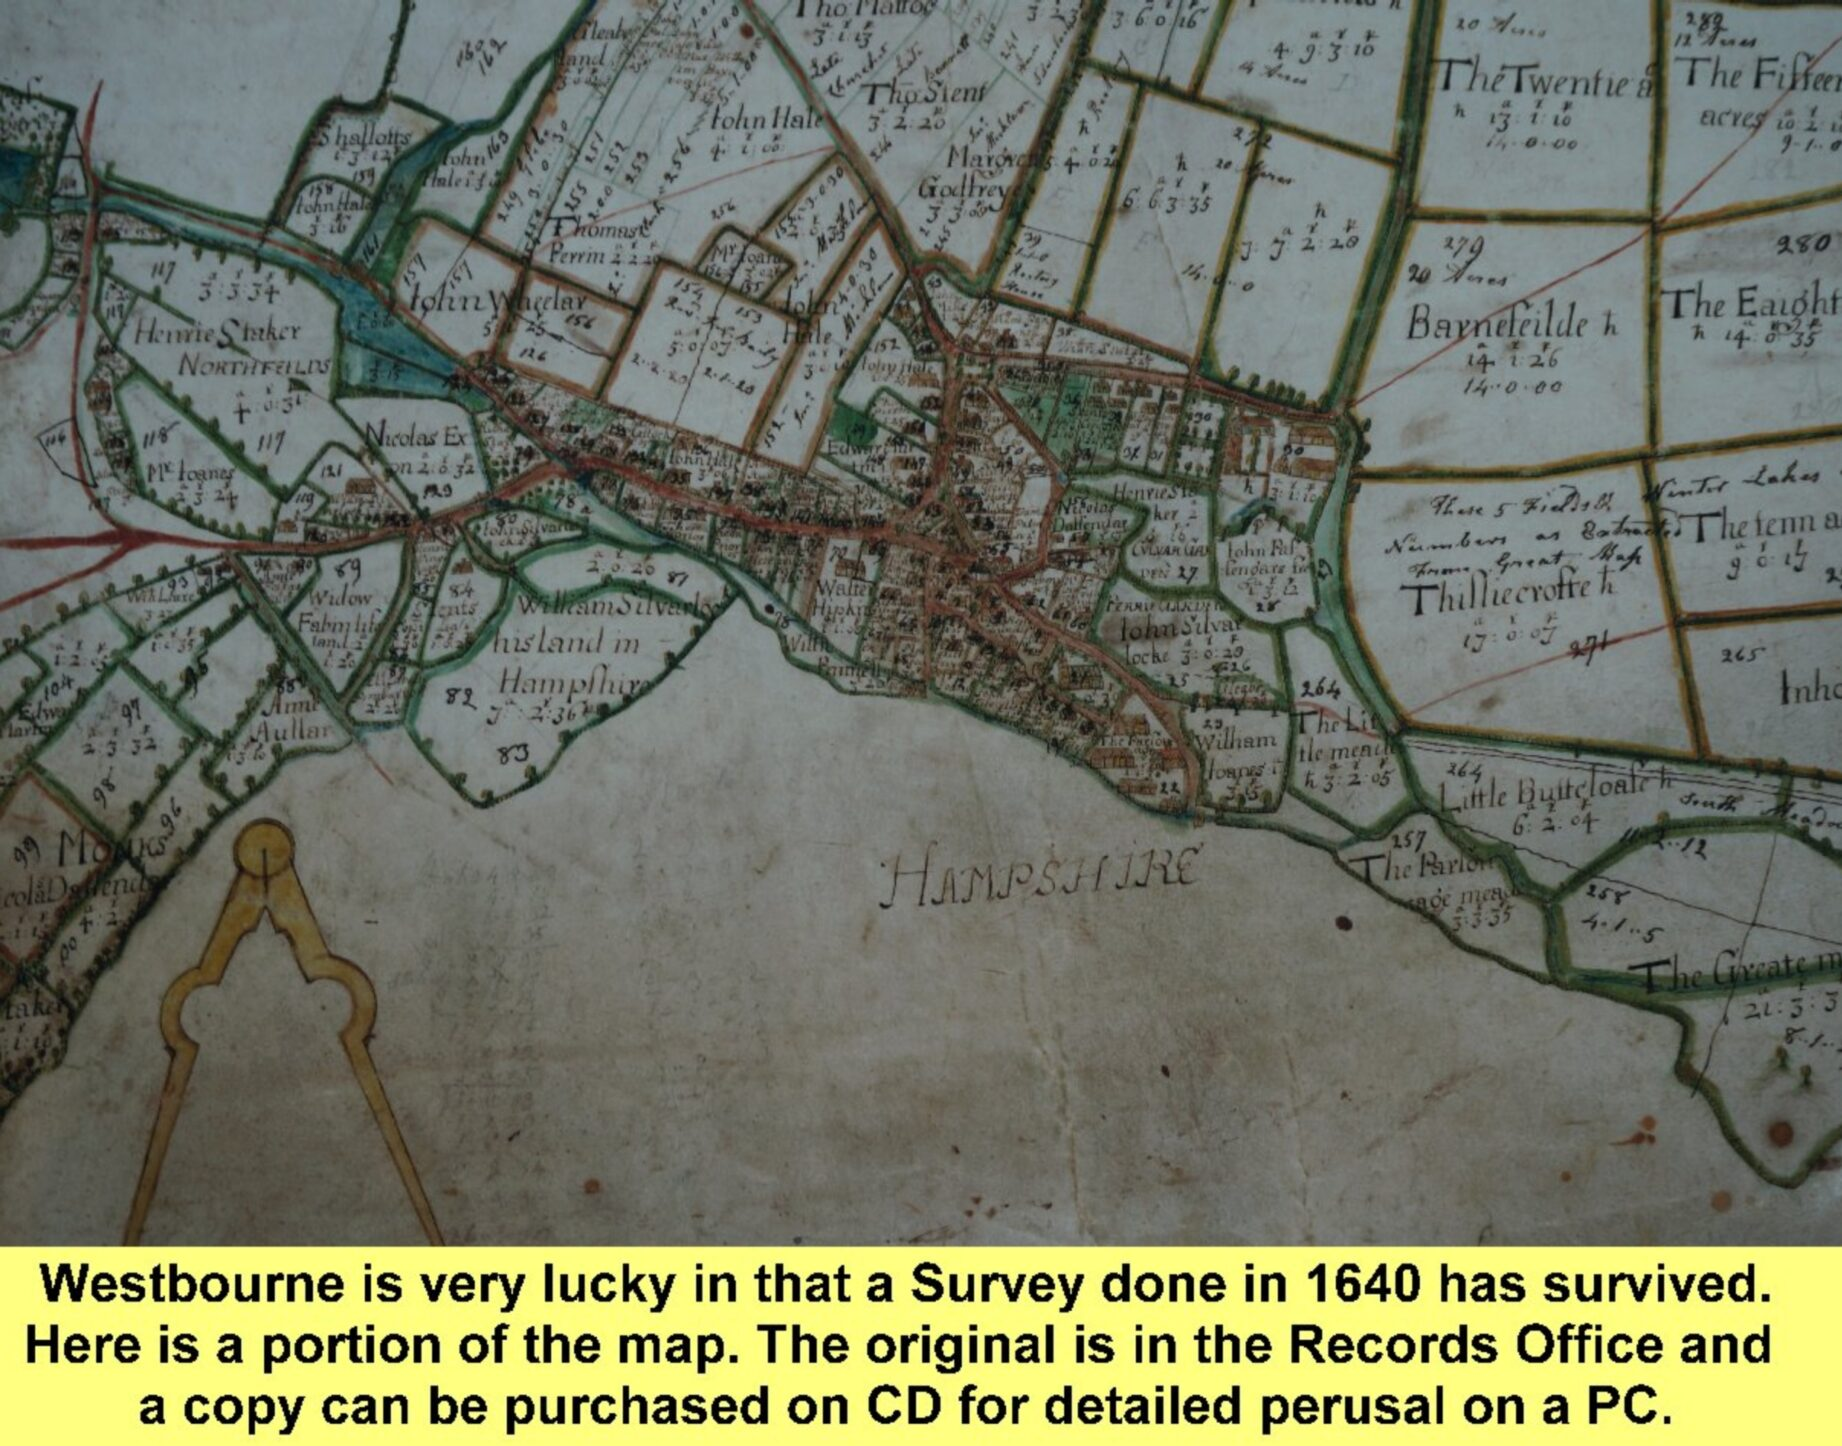 WESTBOURNE HISTORY PHOTO, 1640 Survey map